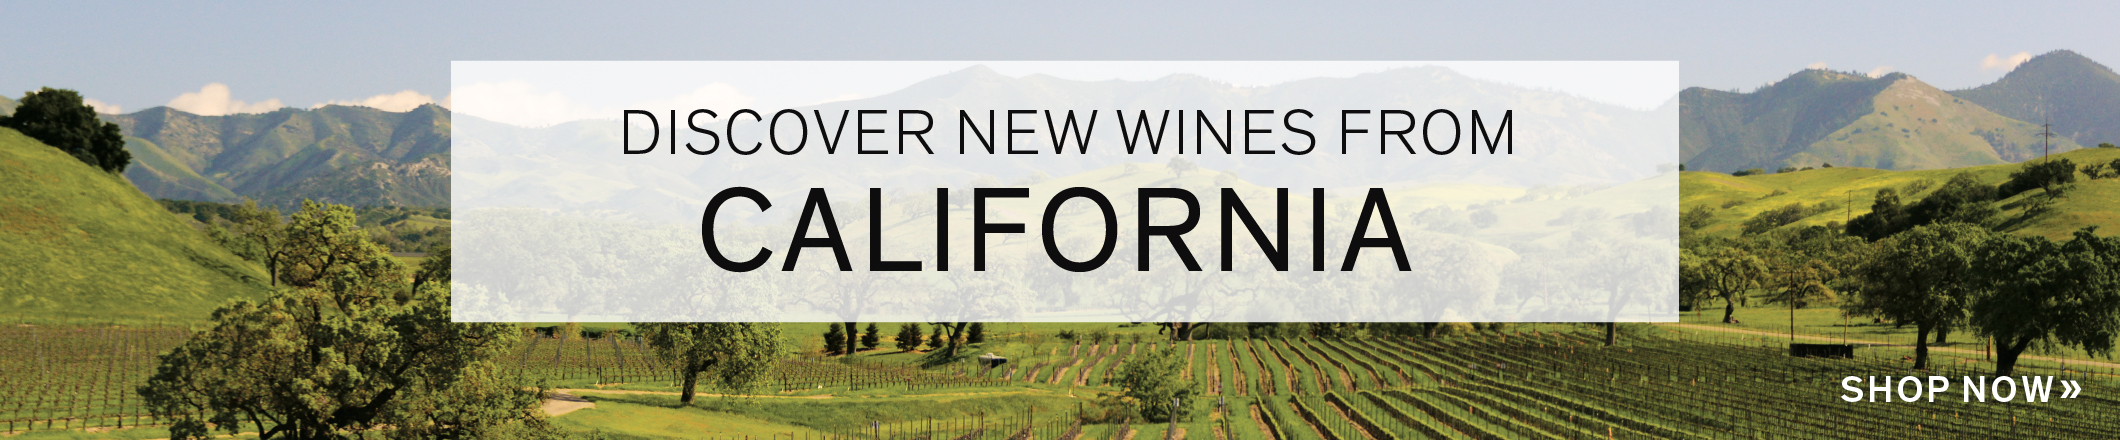 DISCOVER NEW WINES OF CALIFORNIA